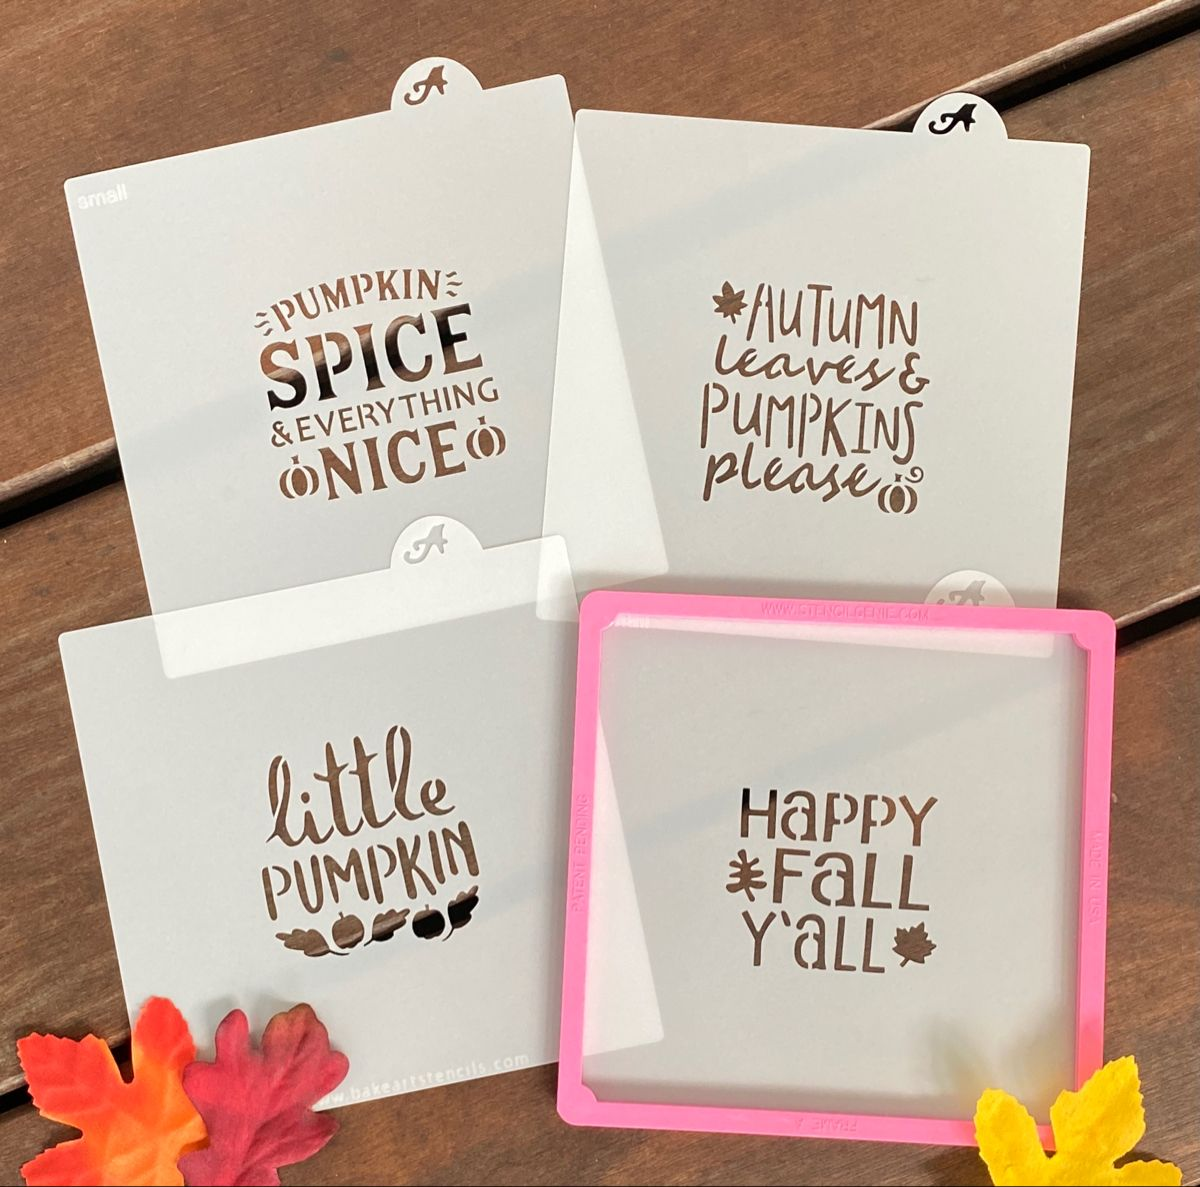 Easily decorate your Fall Cookies with these fun phrase cookie stencils! #decoratedcookies #decoratedsugarcookies #cookiestencils #fallcookies #pumpkincookies